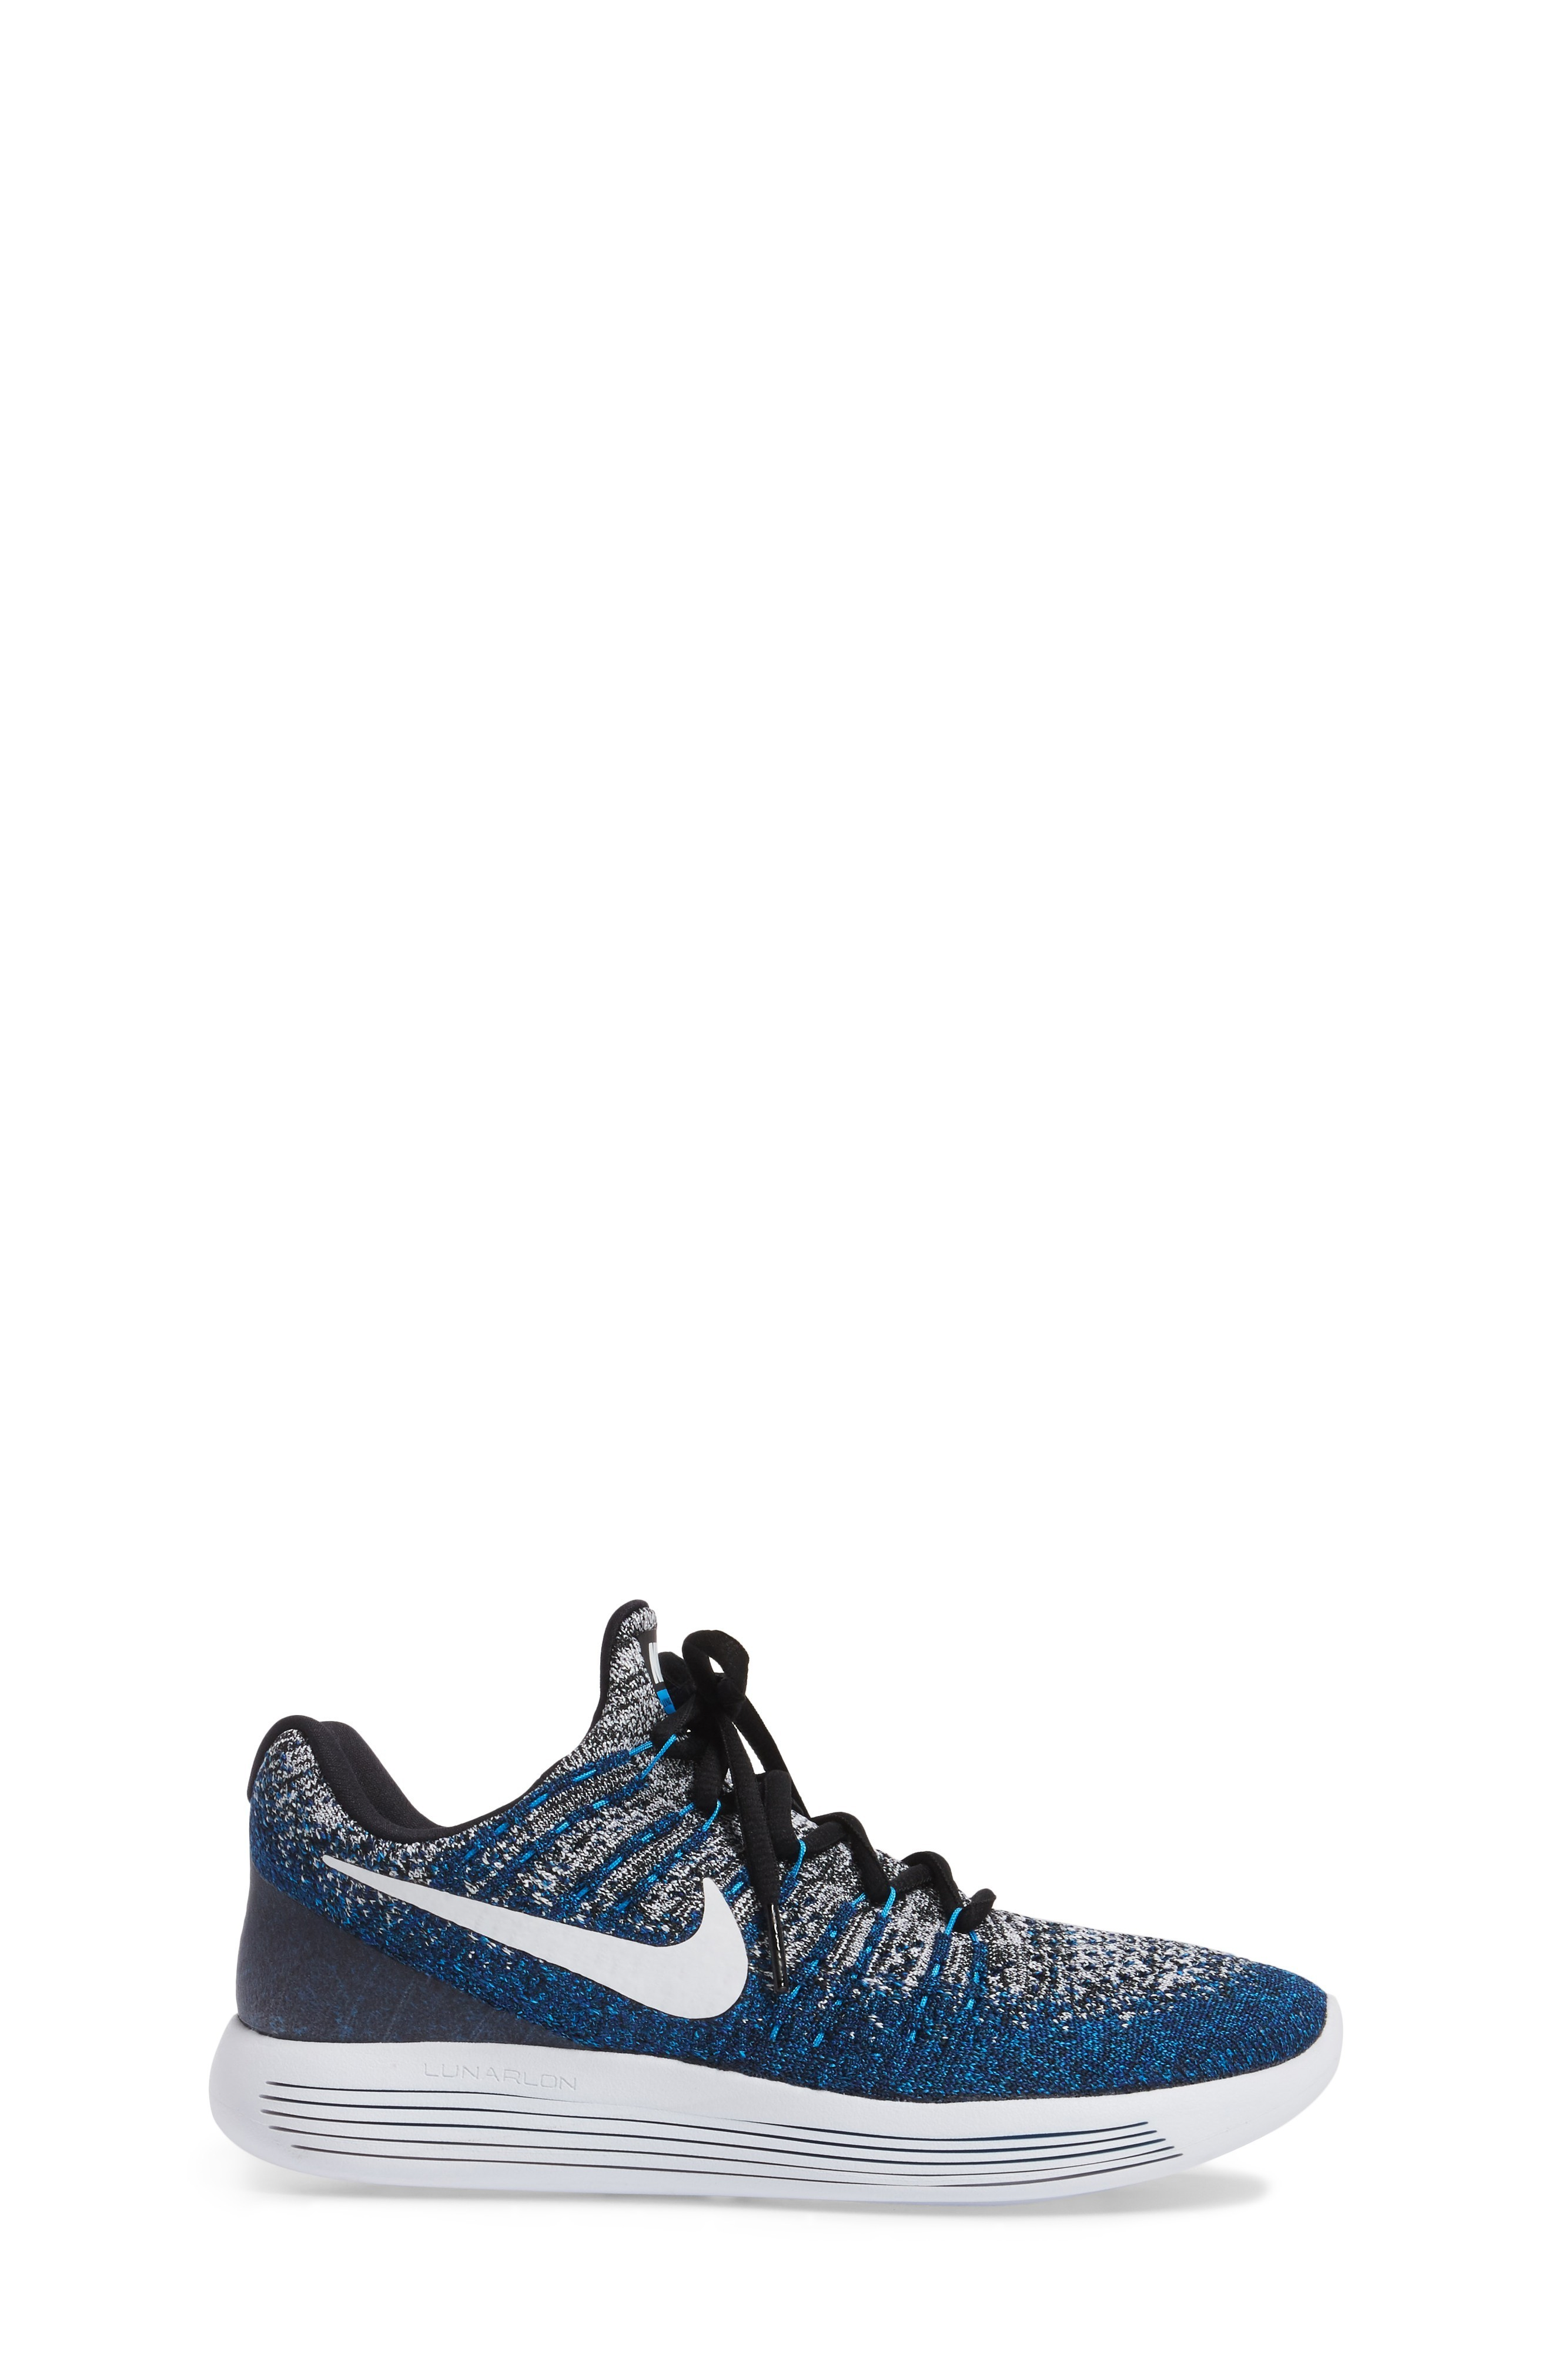 ナイキ LunarEpic Low Flyknit 2 Running Shoe ( キッズシューズ